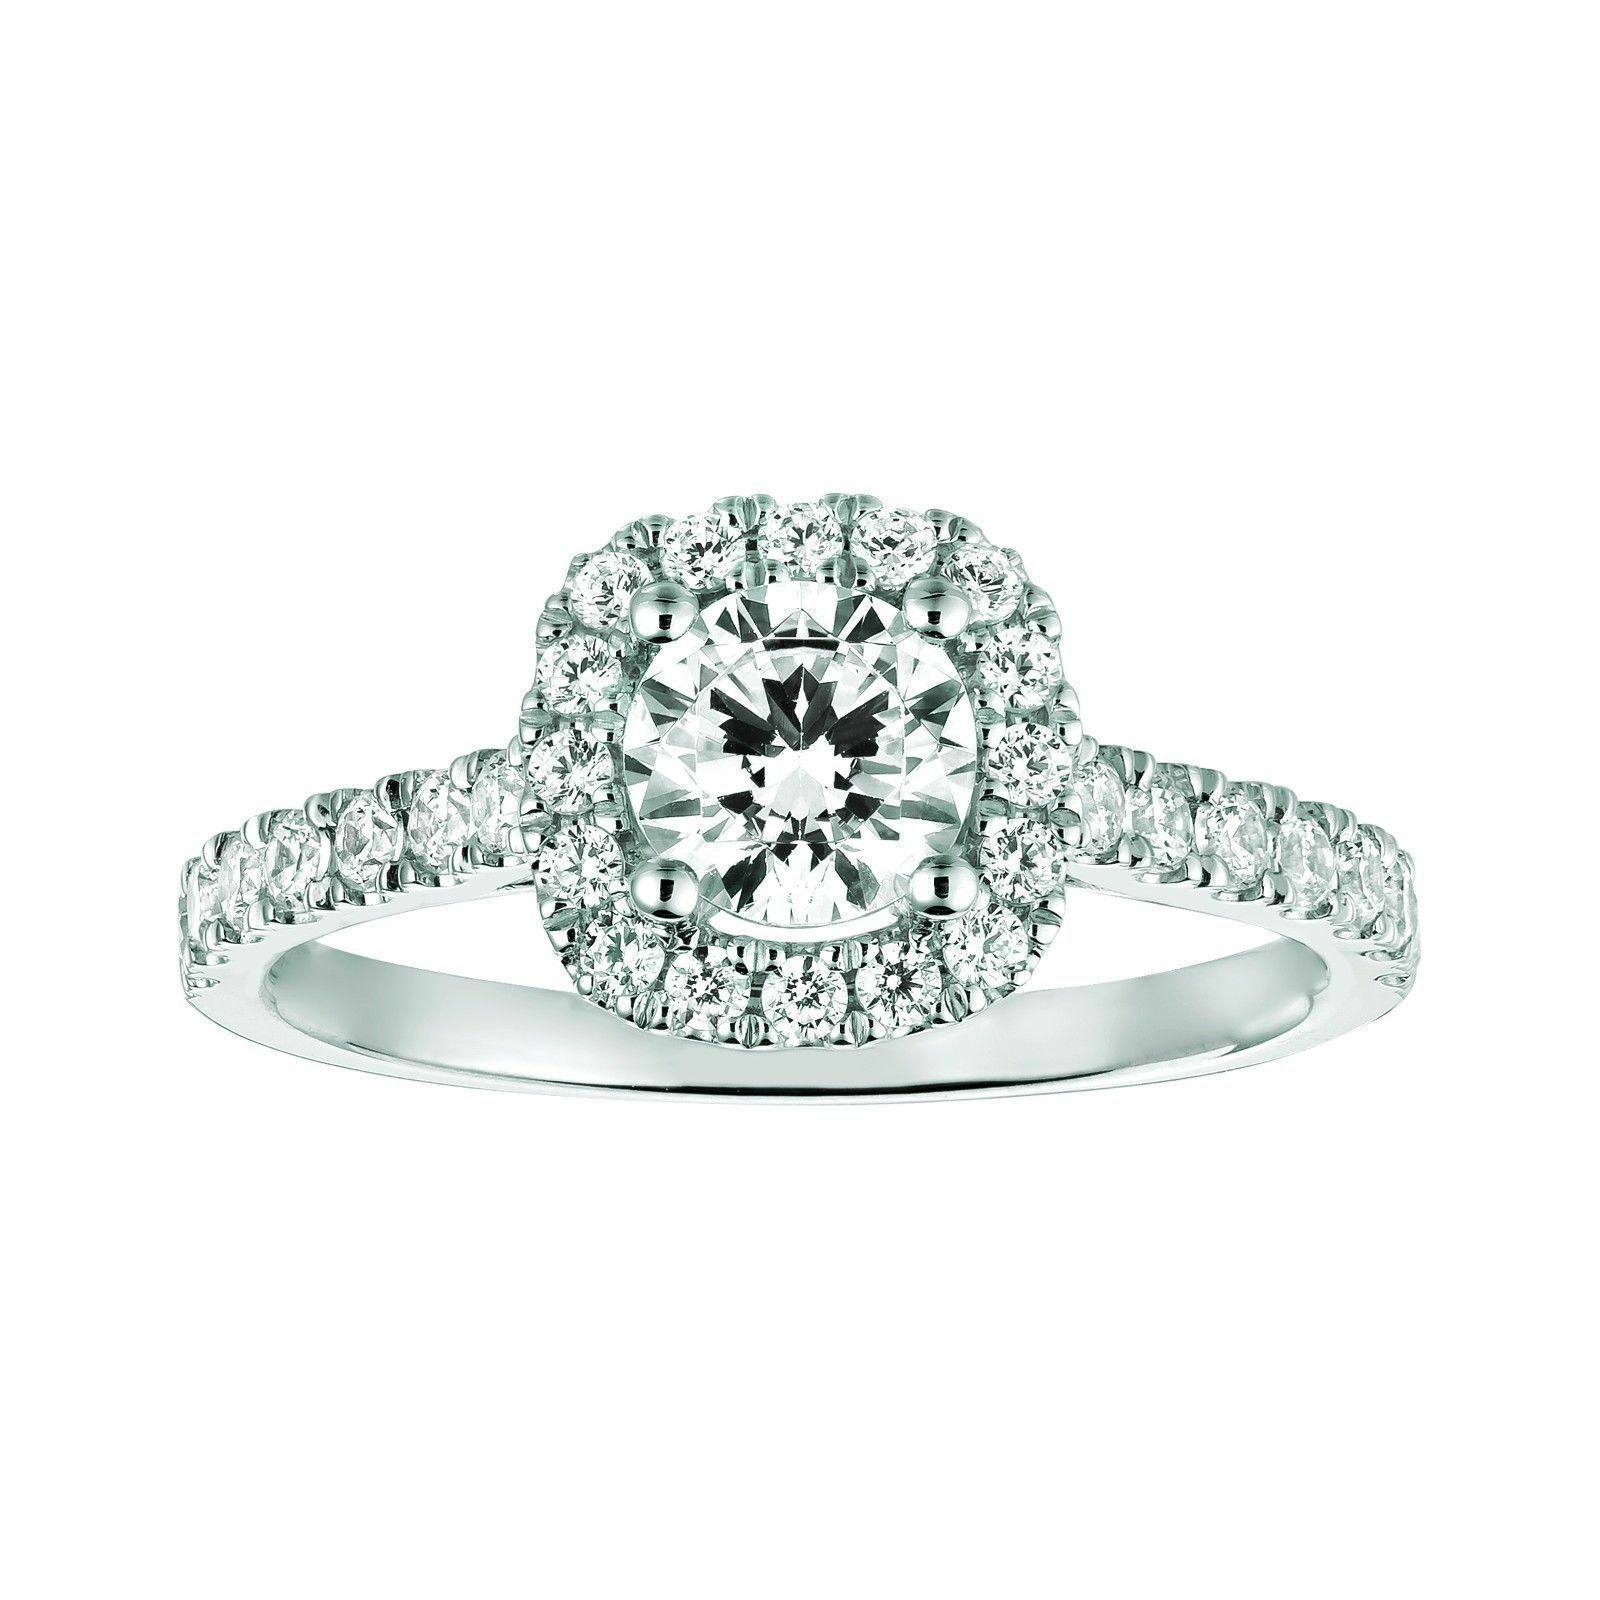 1.30 Ct VVS1 Round Cut Solitaire Diamond Wedding Ring 18K Real White gold Size 5